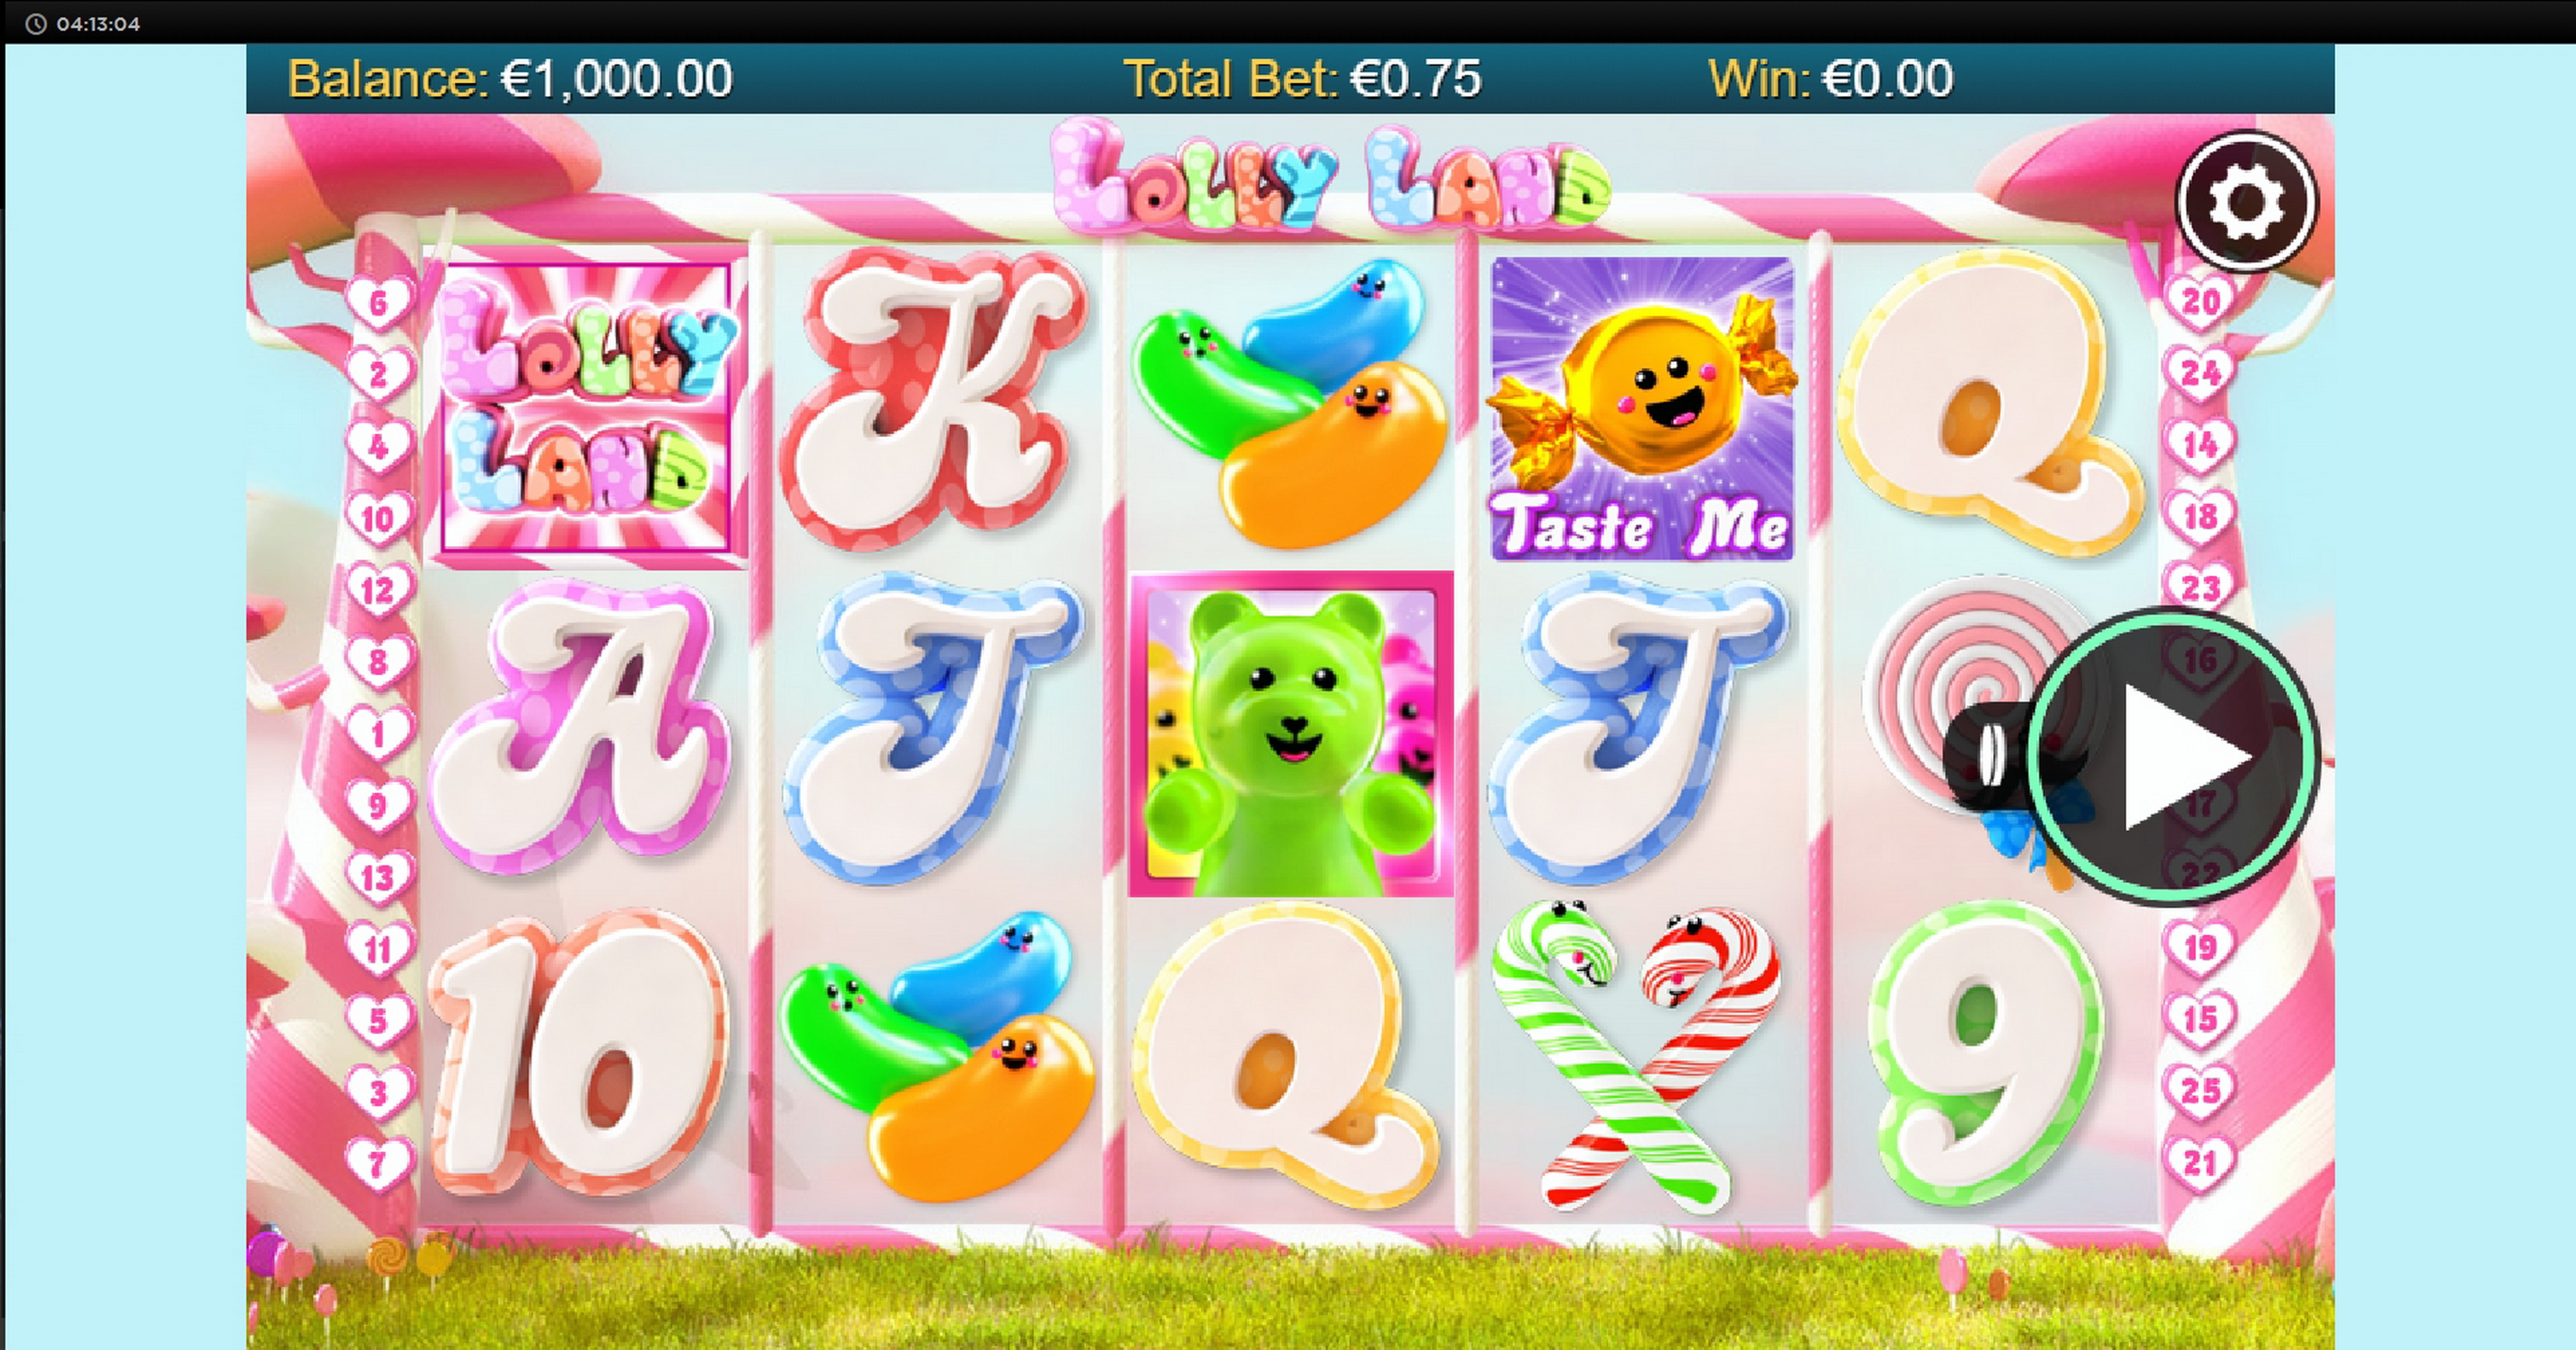 Reels in Lolly Land Slot Game by Chance Interactive